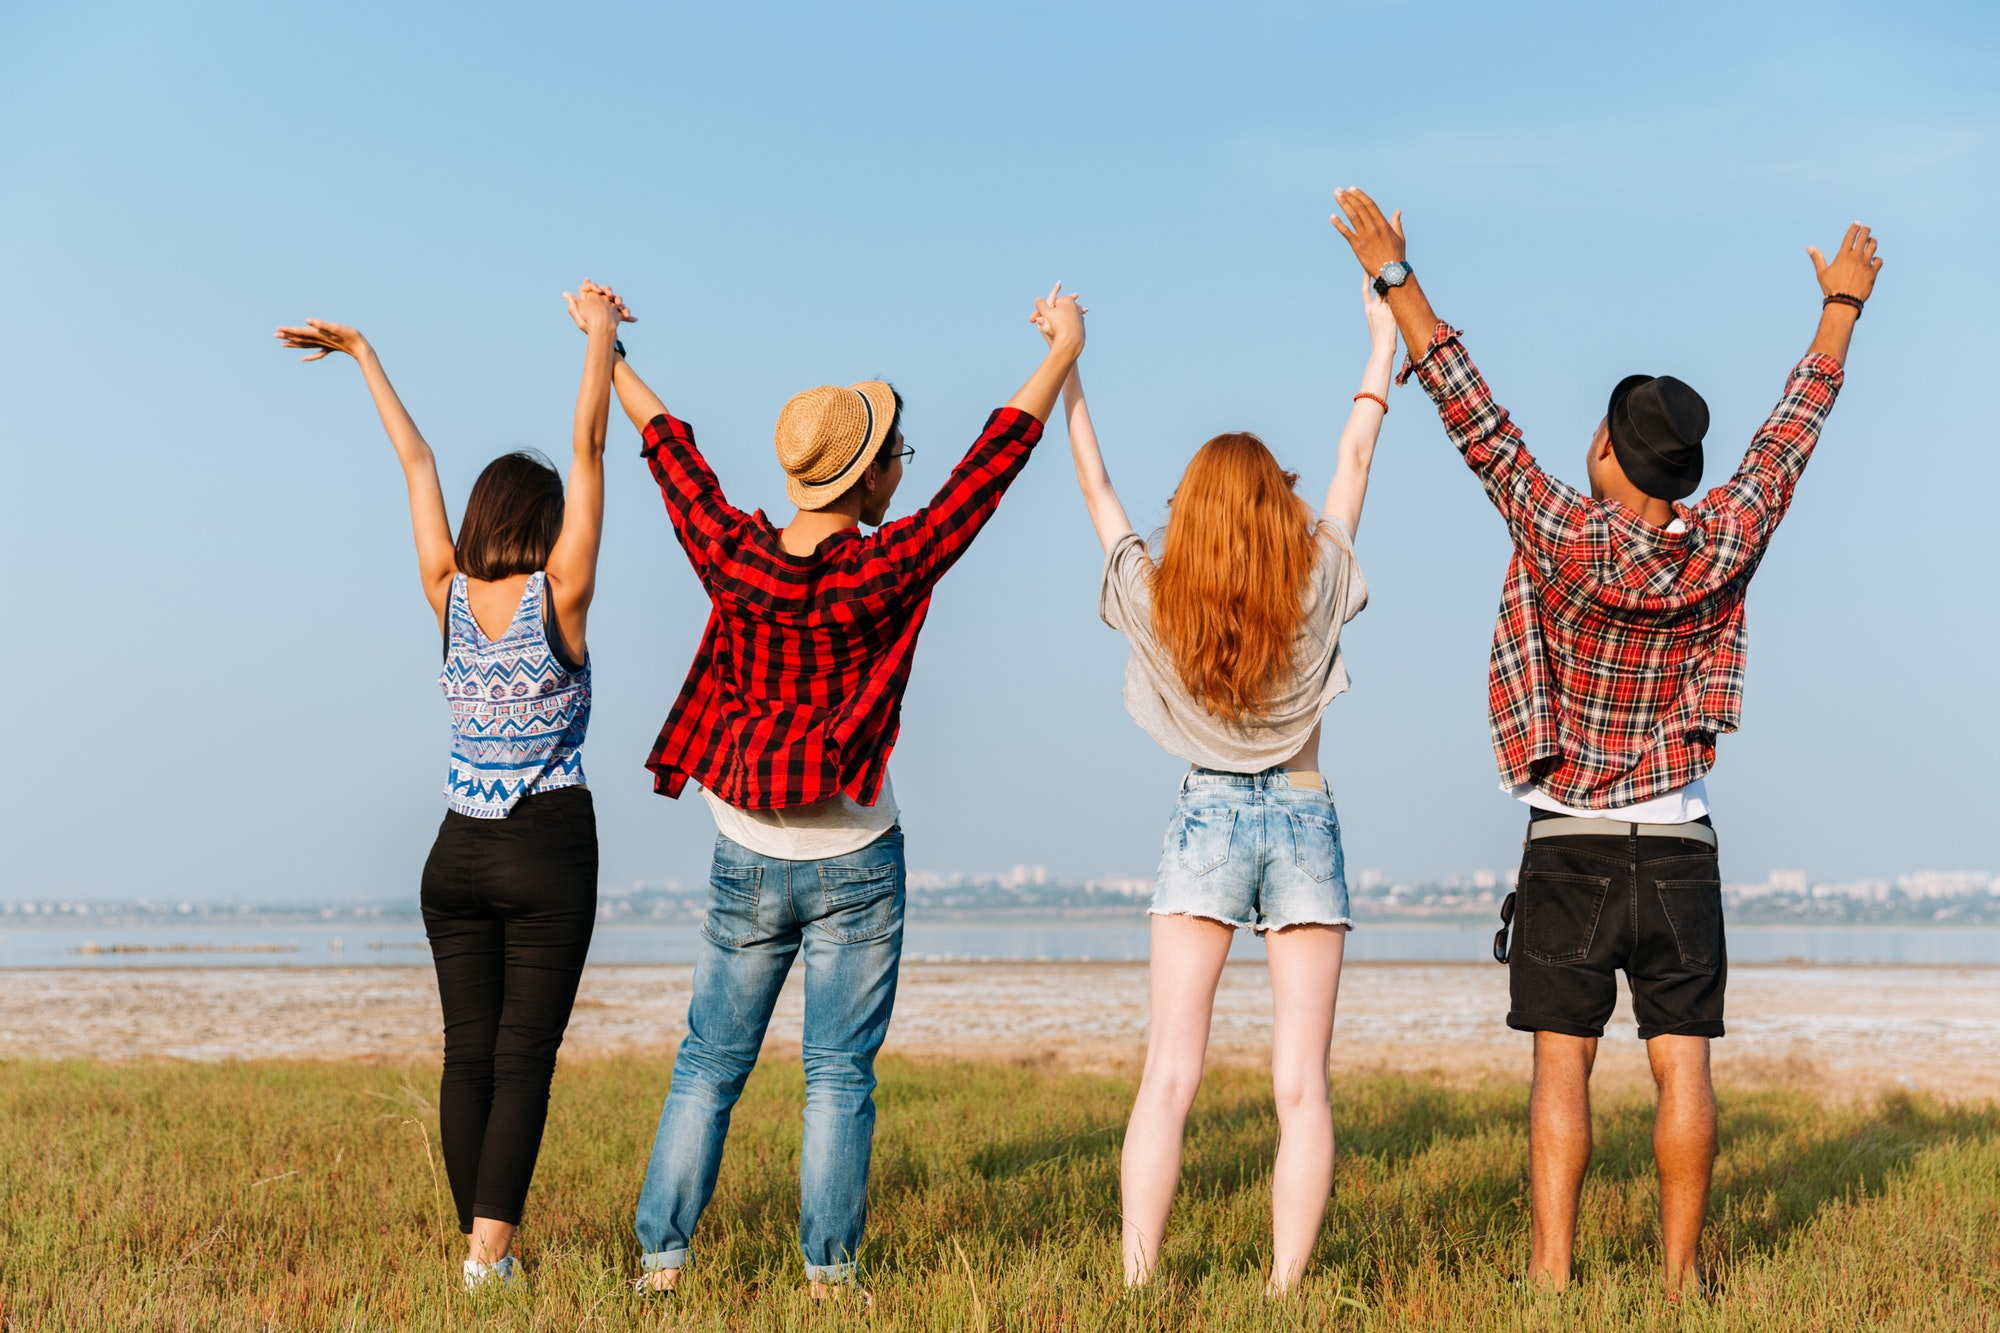 Back view of friends standing and holding raised hands outdoors